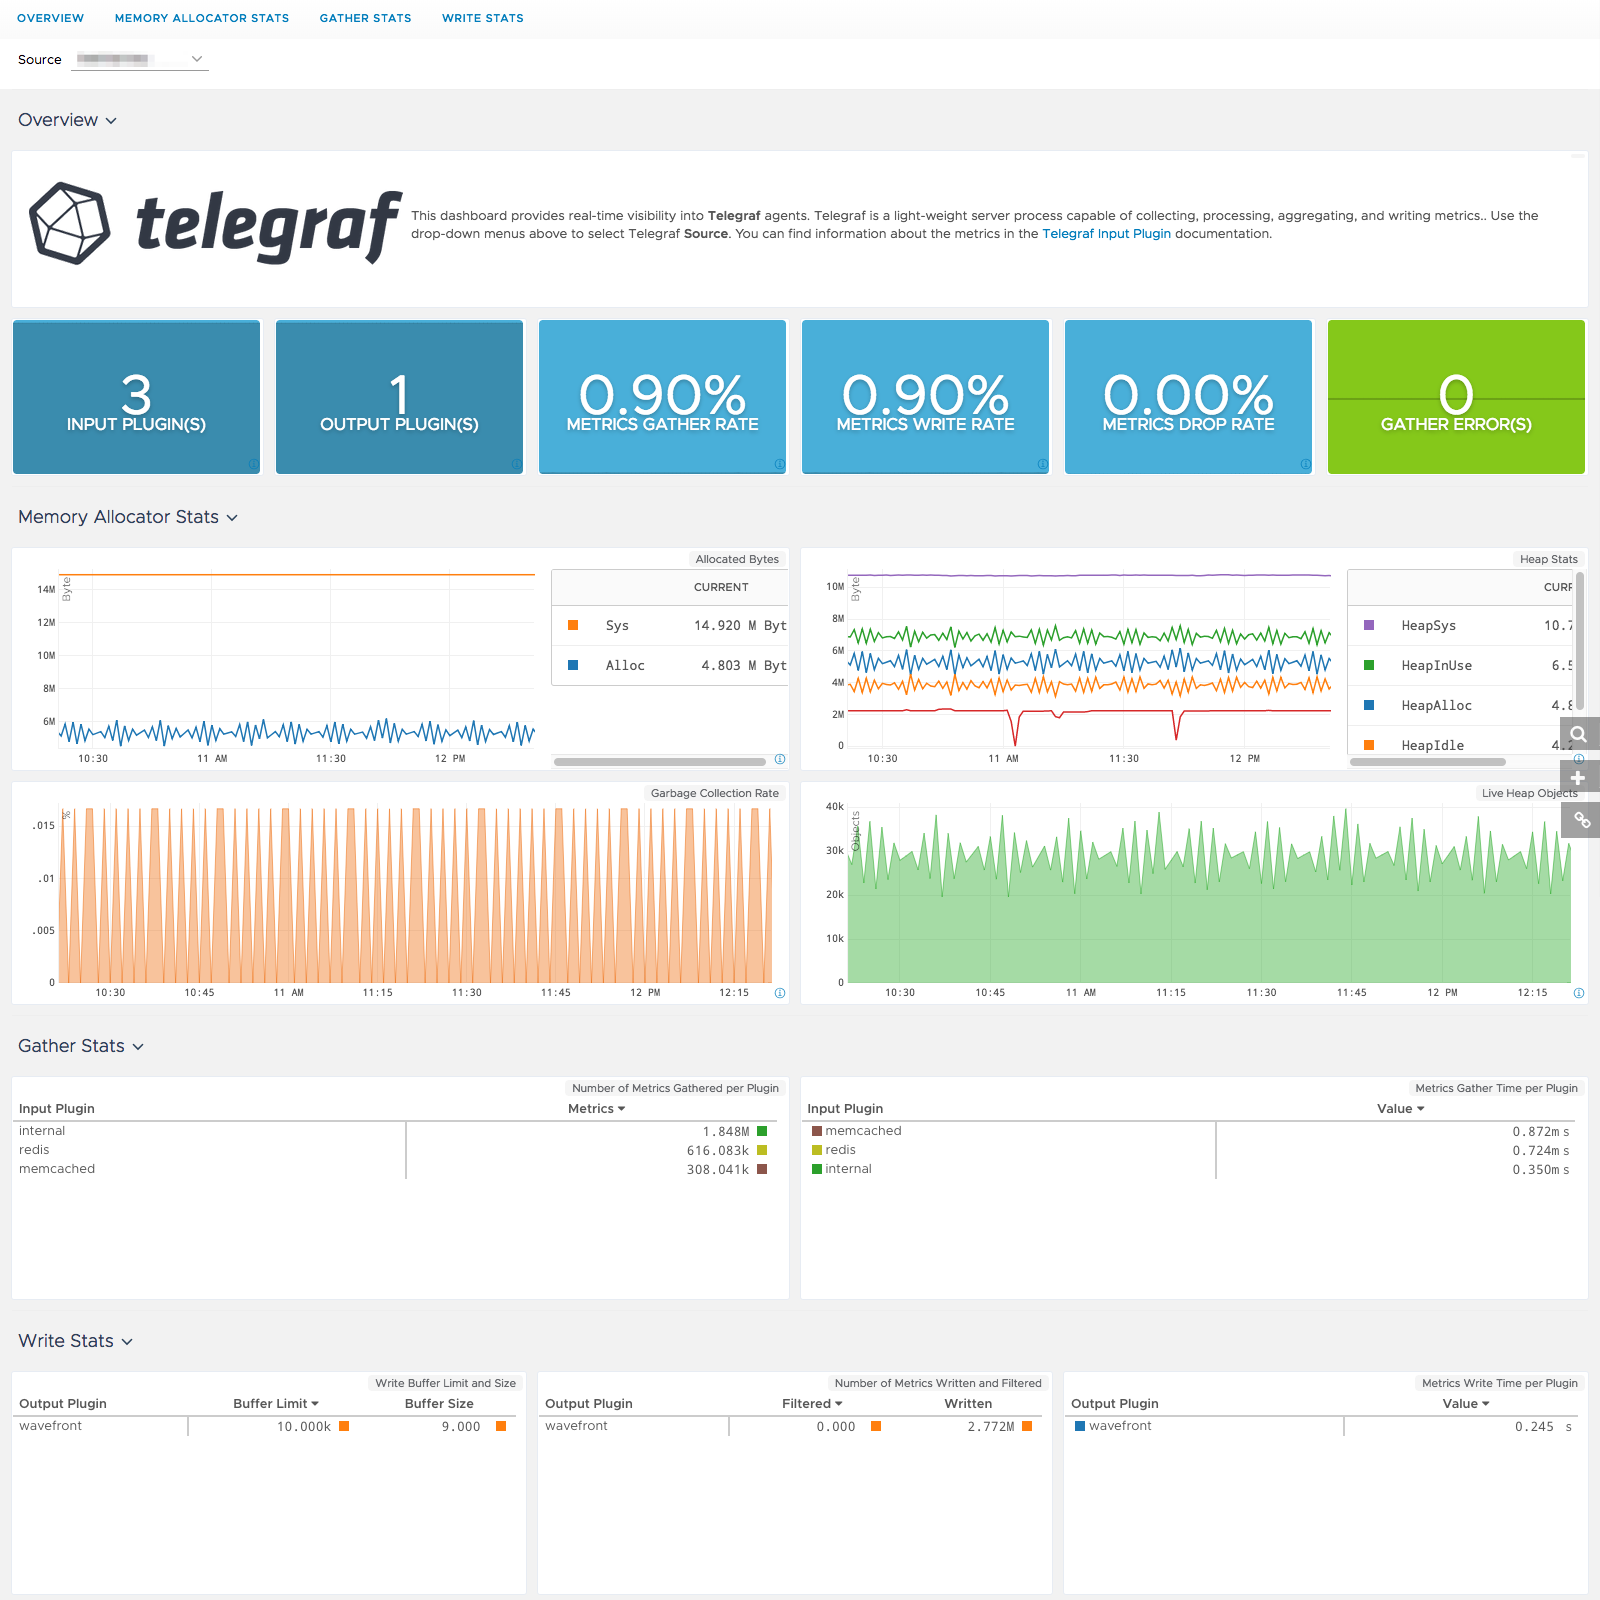 images/telegraf_dashboard.png